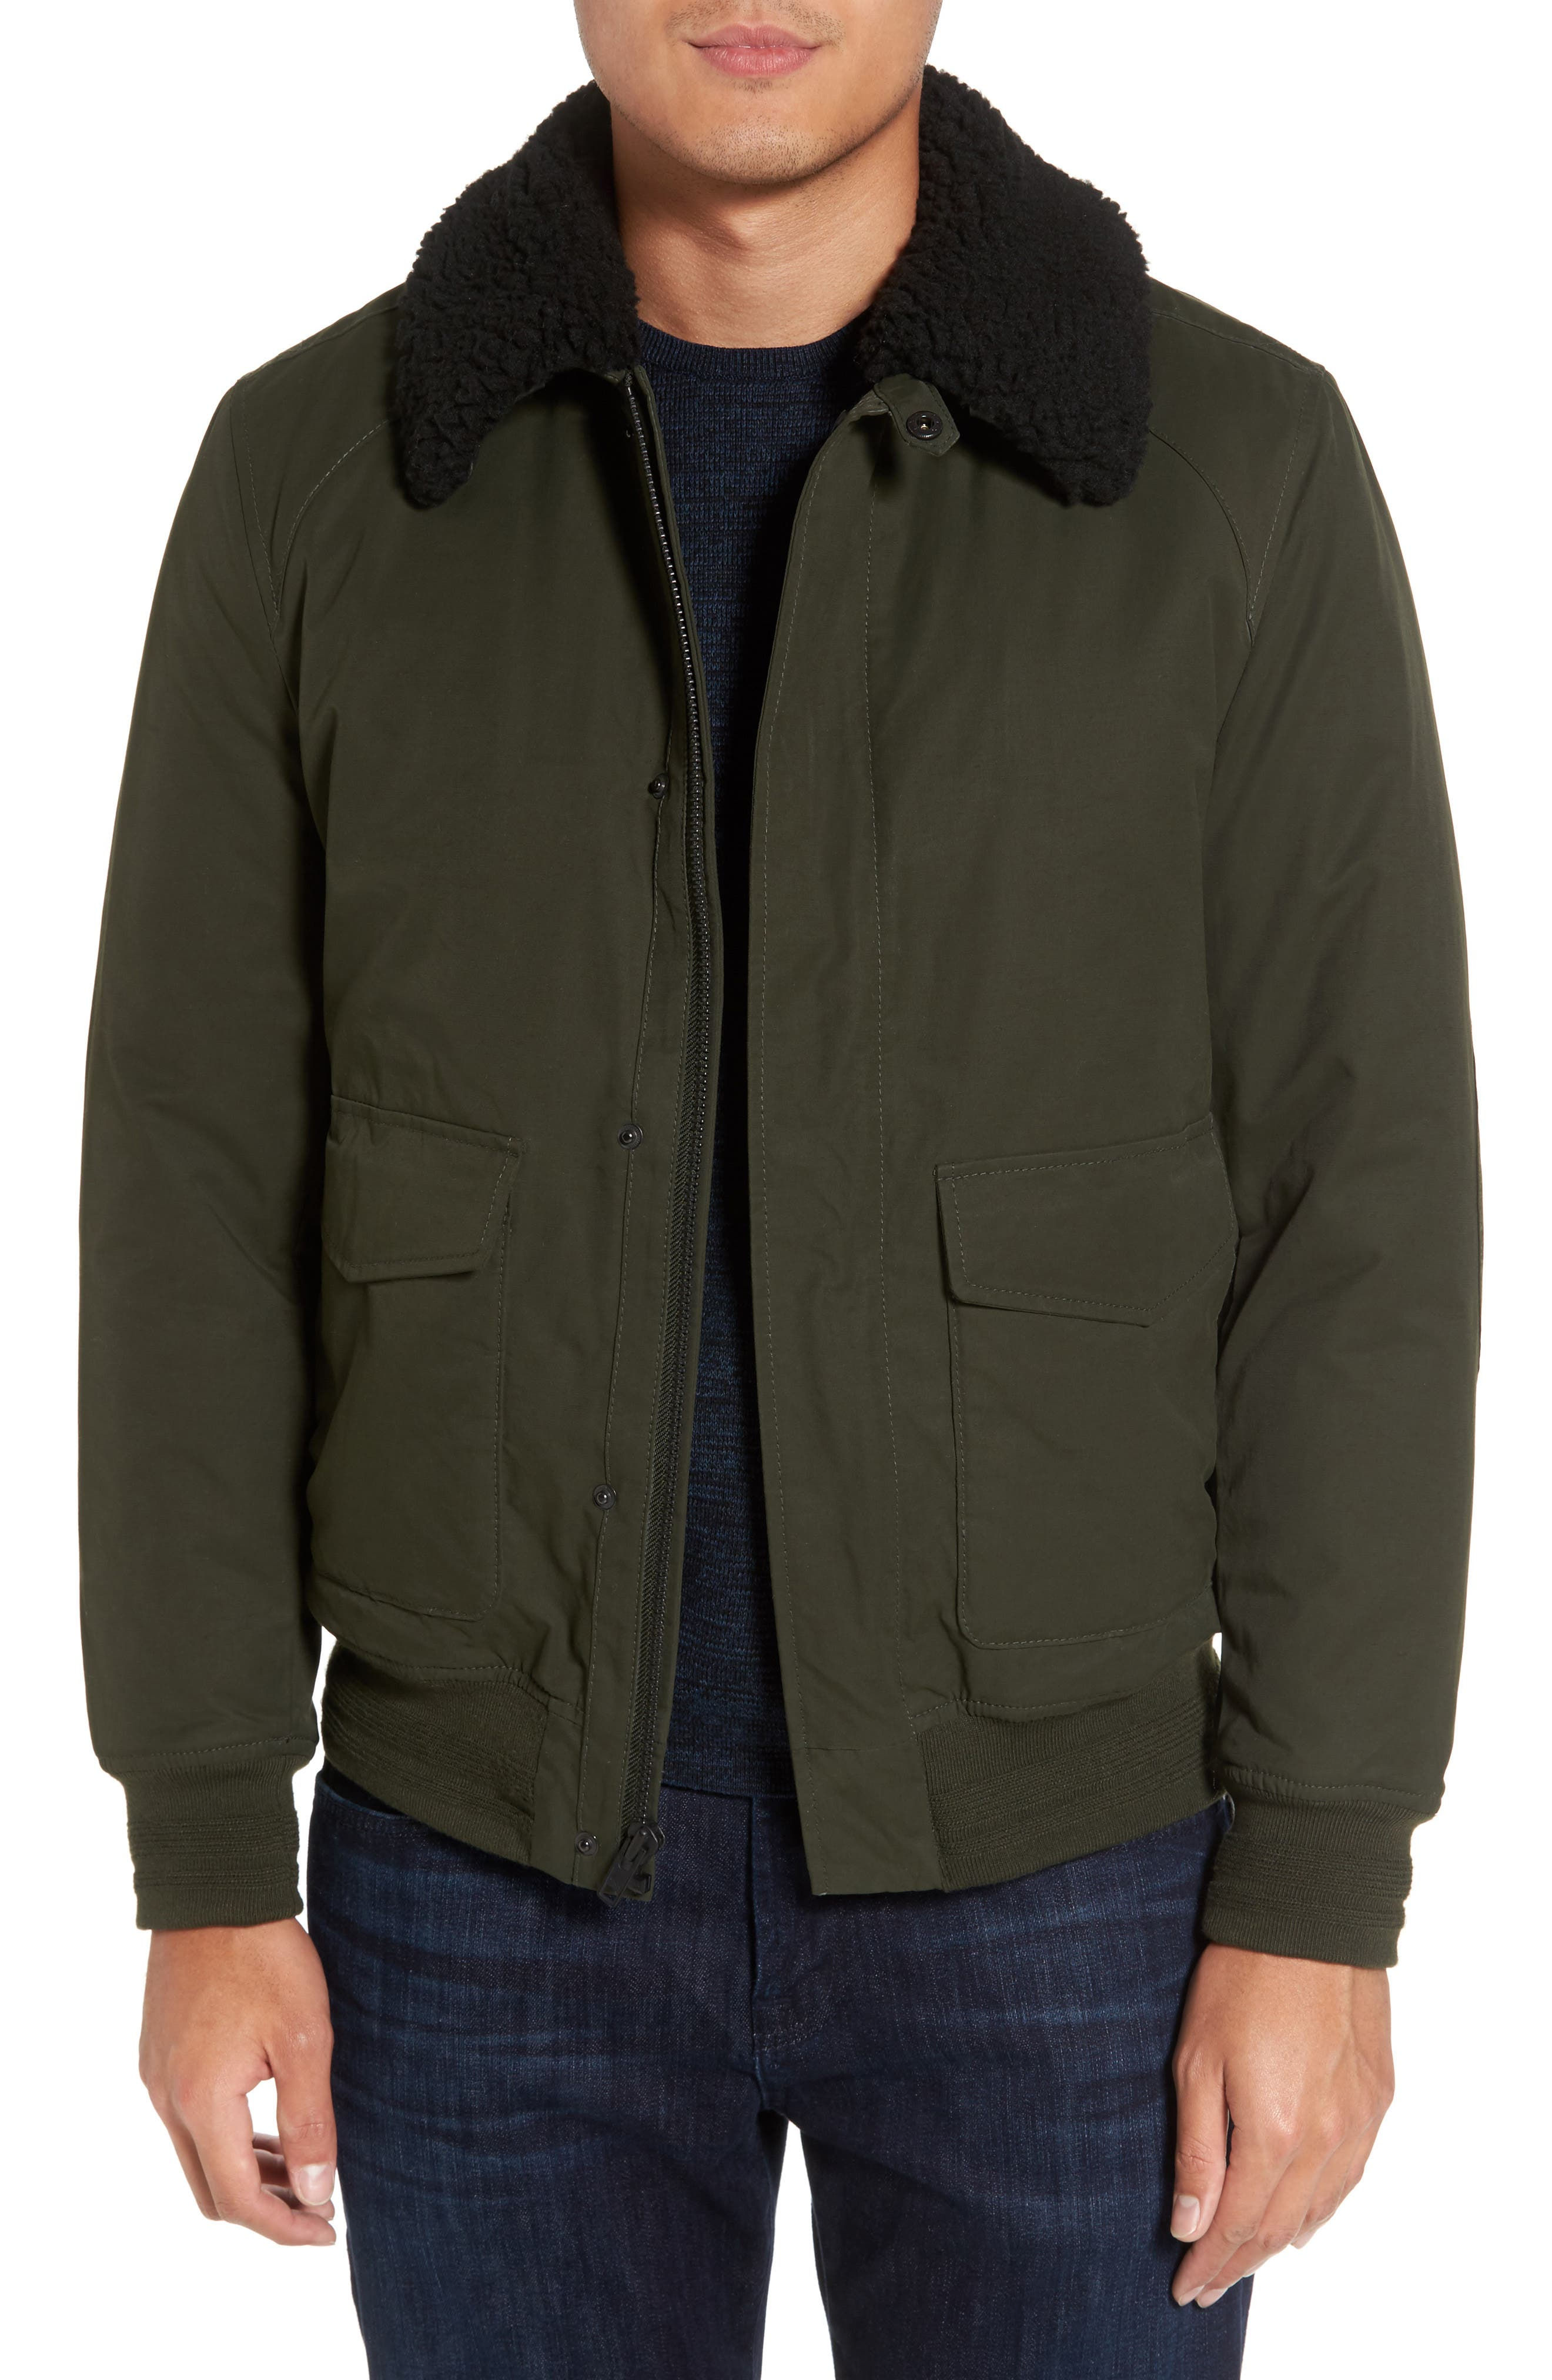 Alternate Image 1 Selected - Calibrate Flight Bomber Jacket with Faux Shearling Trim